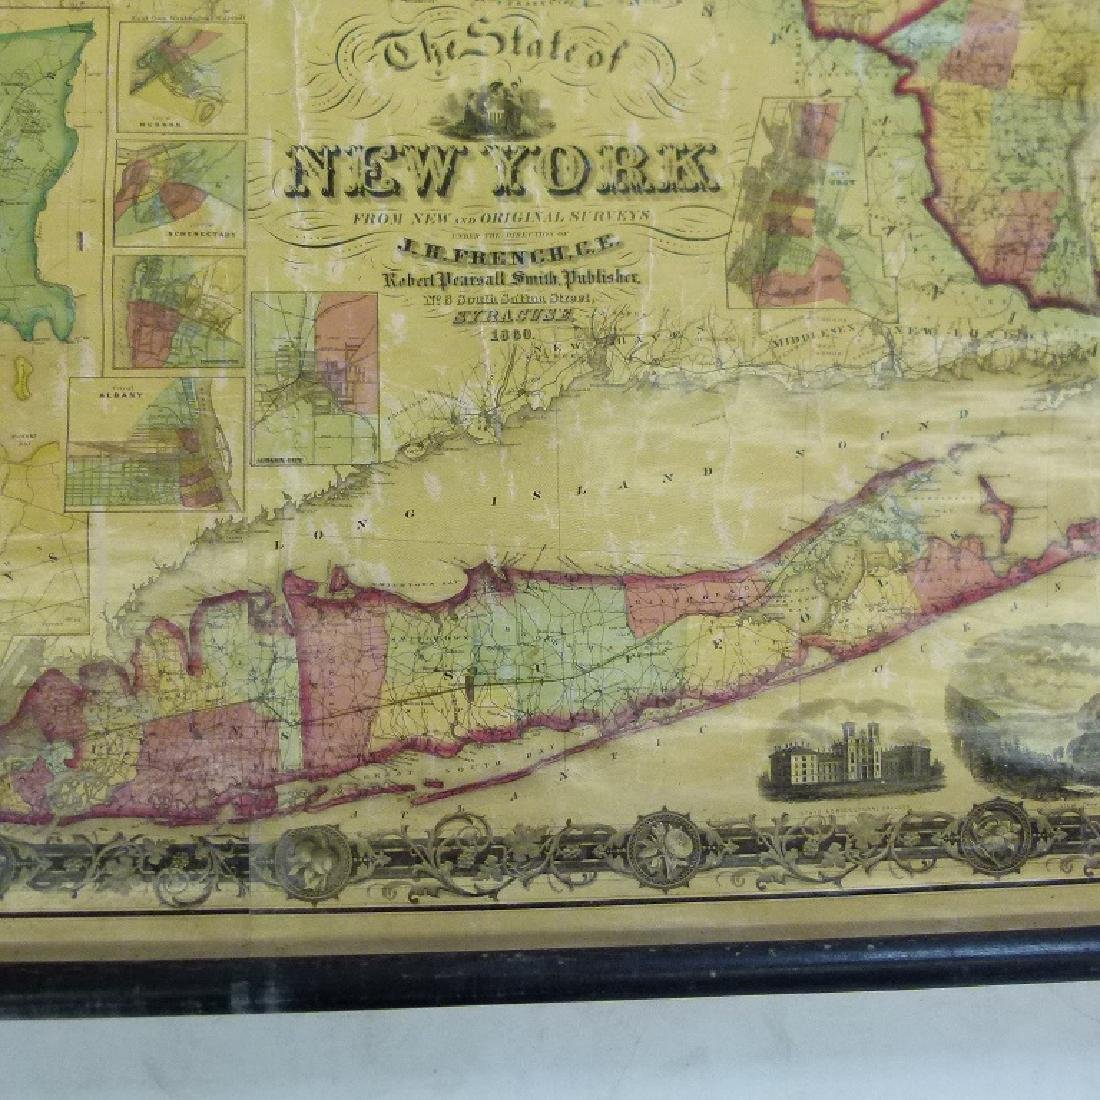 NEW YORK STATE MAP, J.H. FRENCH 1860 - 5